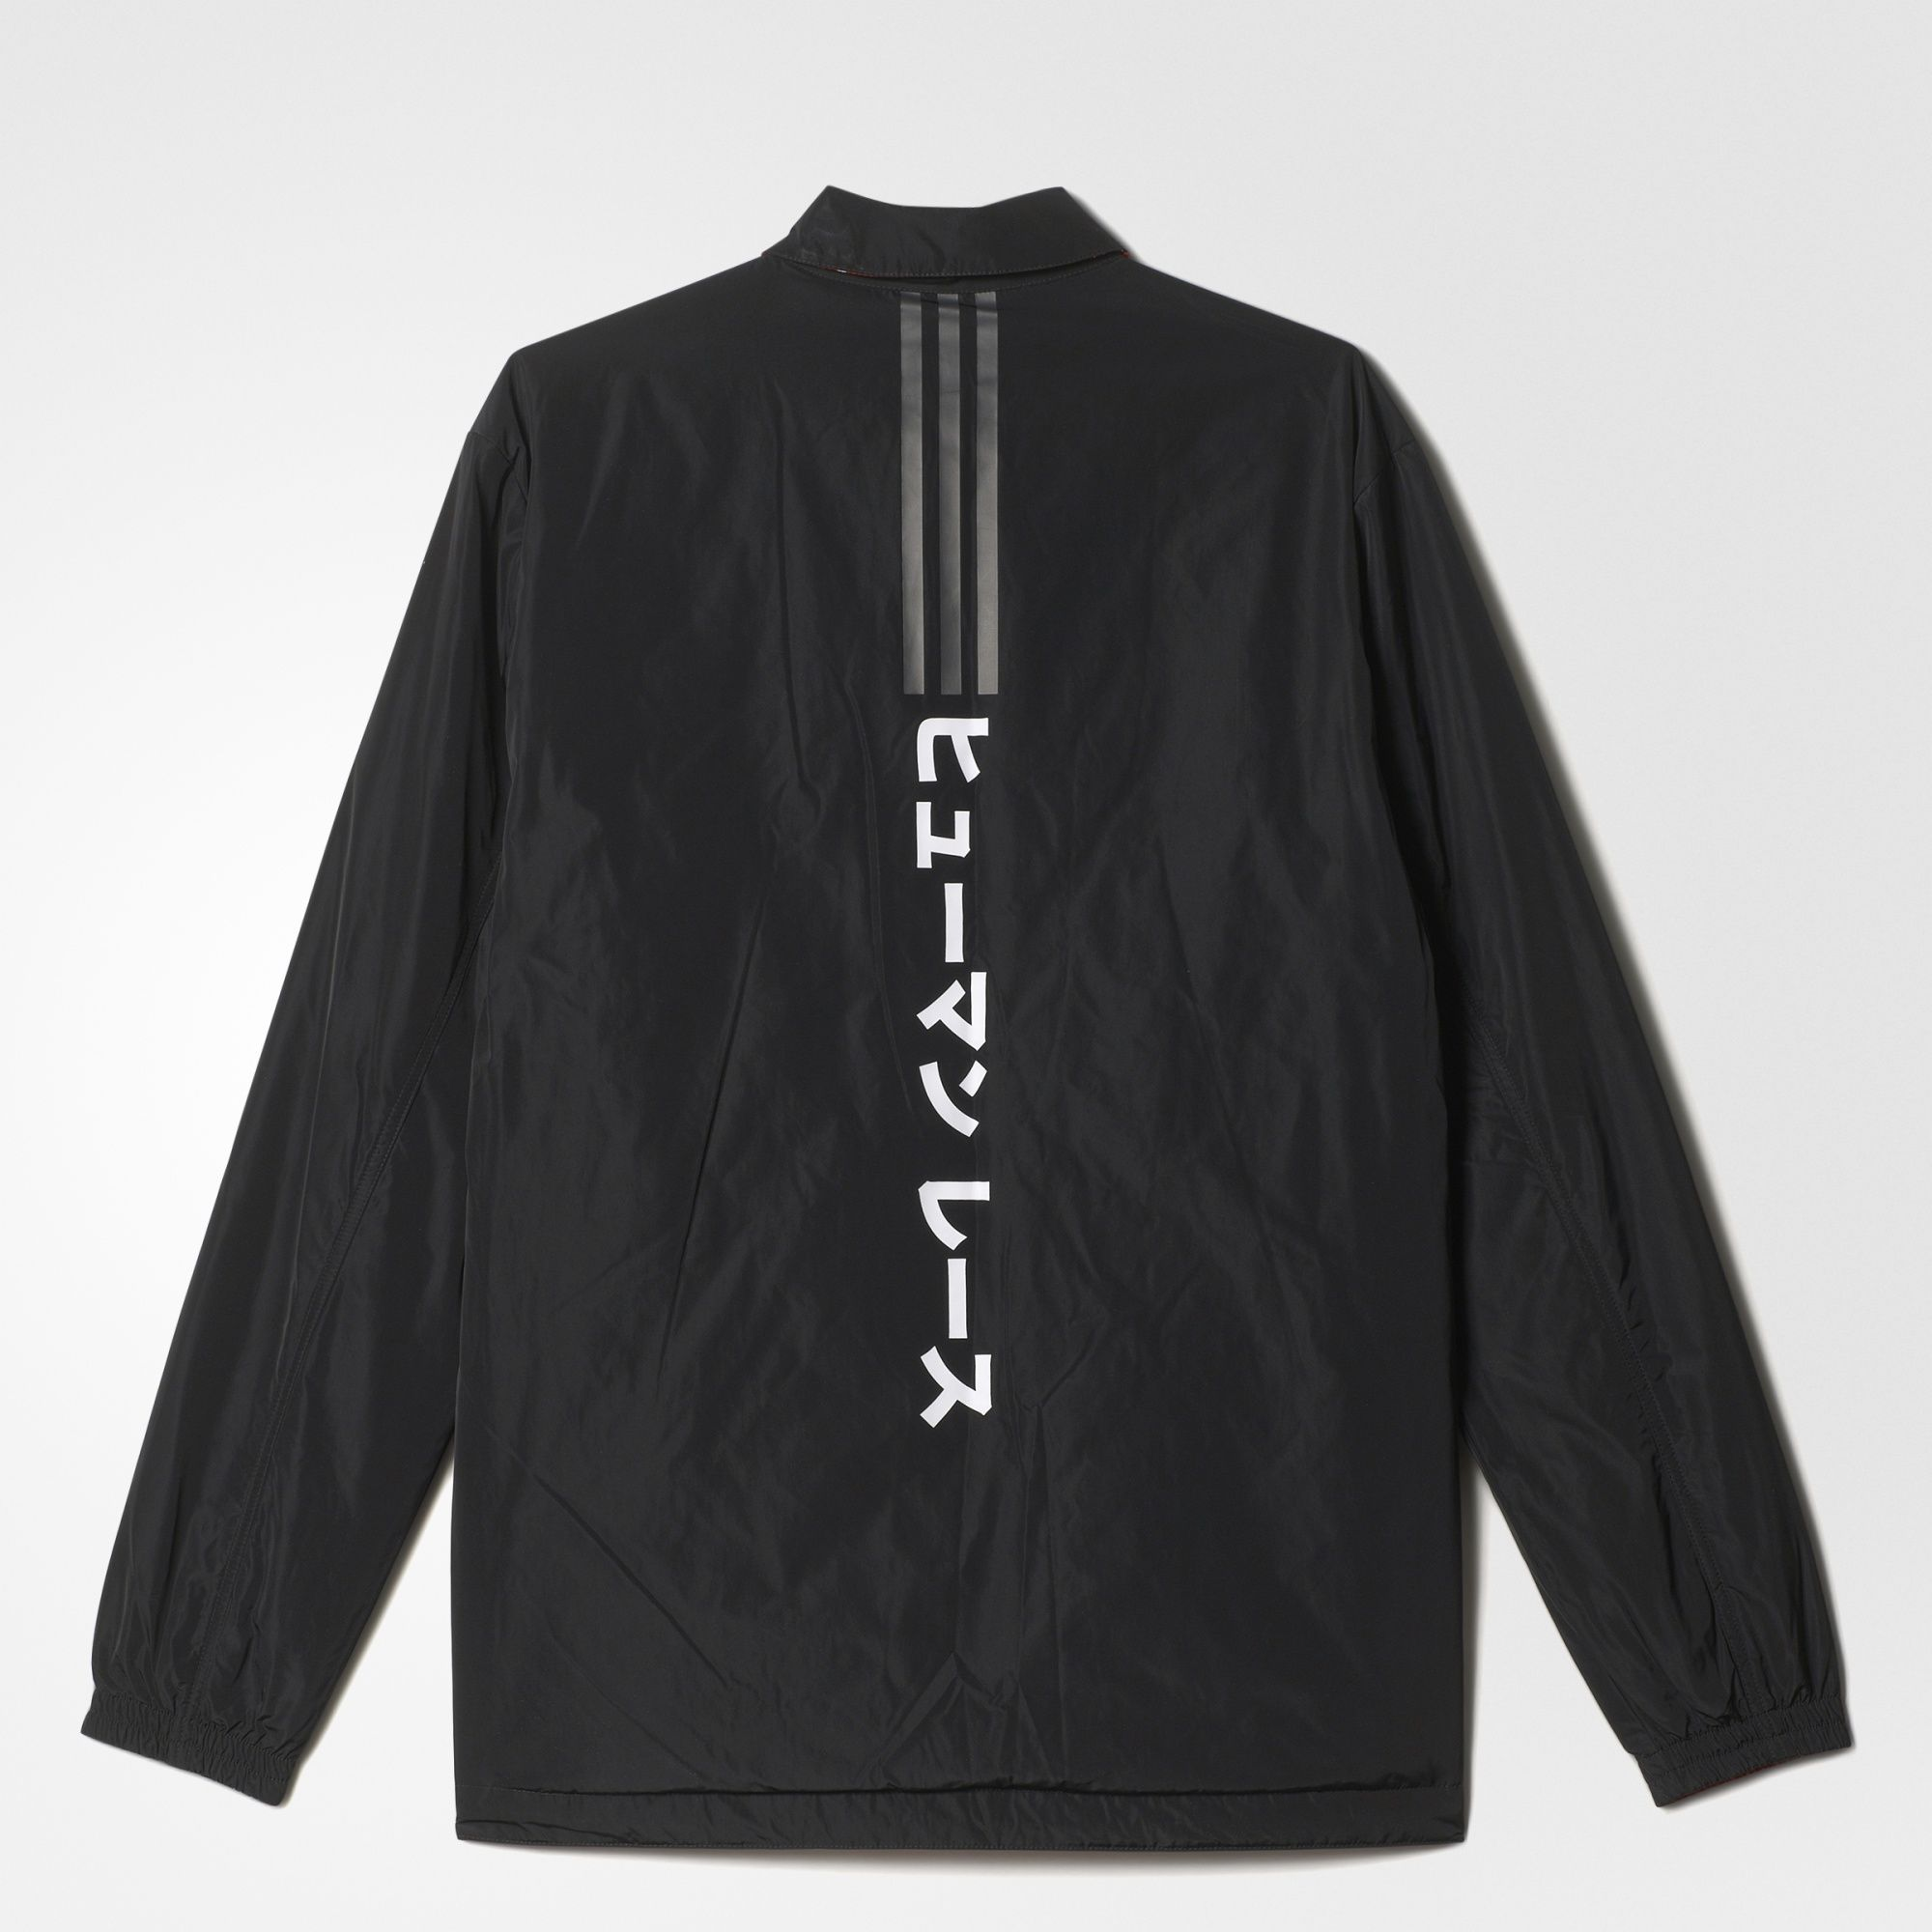 Adidas Pharrell Williams Hu Coach Jacket Product Apparel In Premium Base Layer Manset Sports Compression Nike Under Armour Black